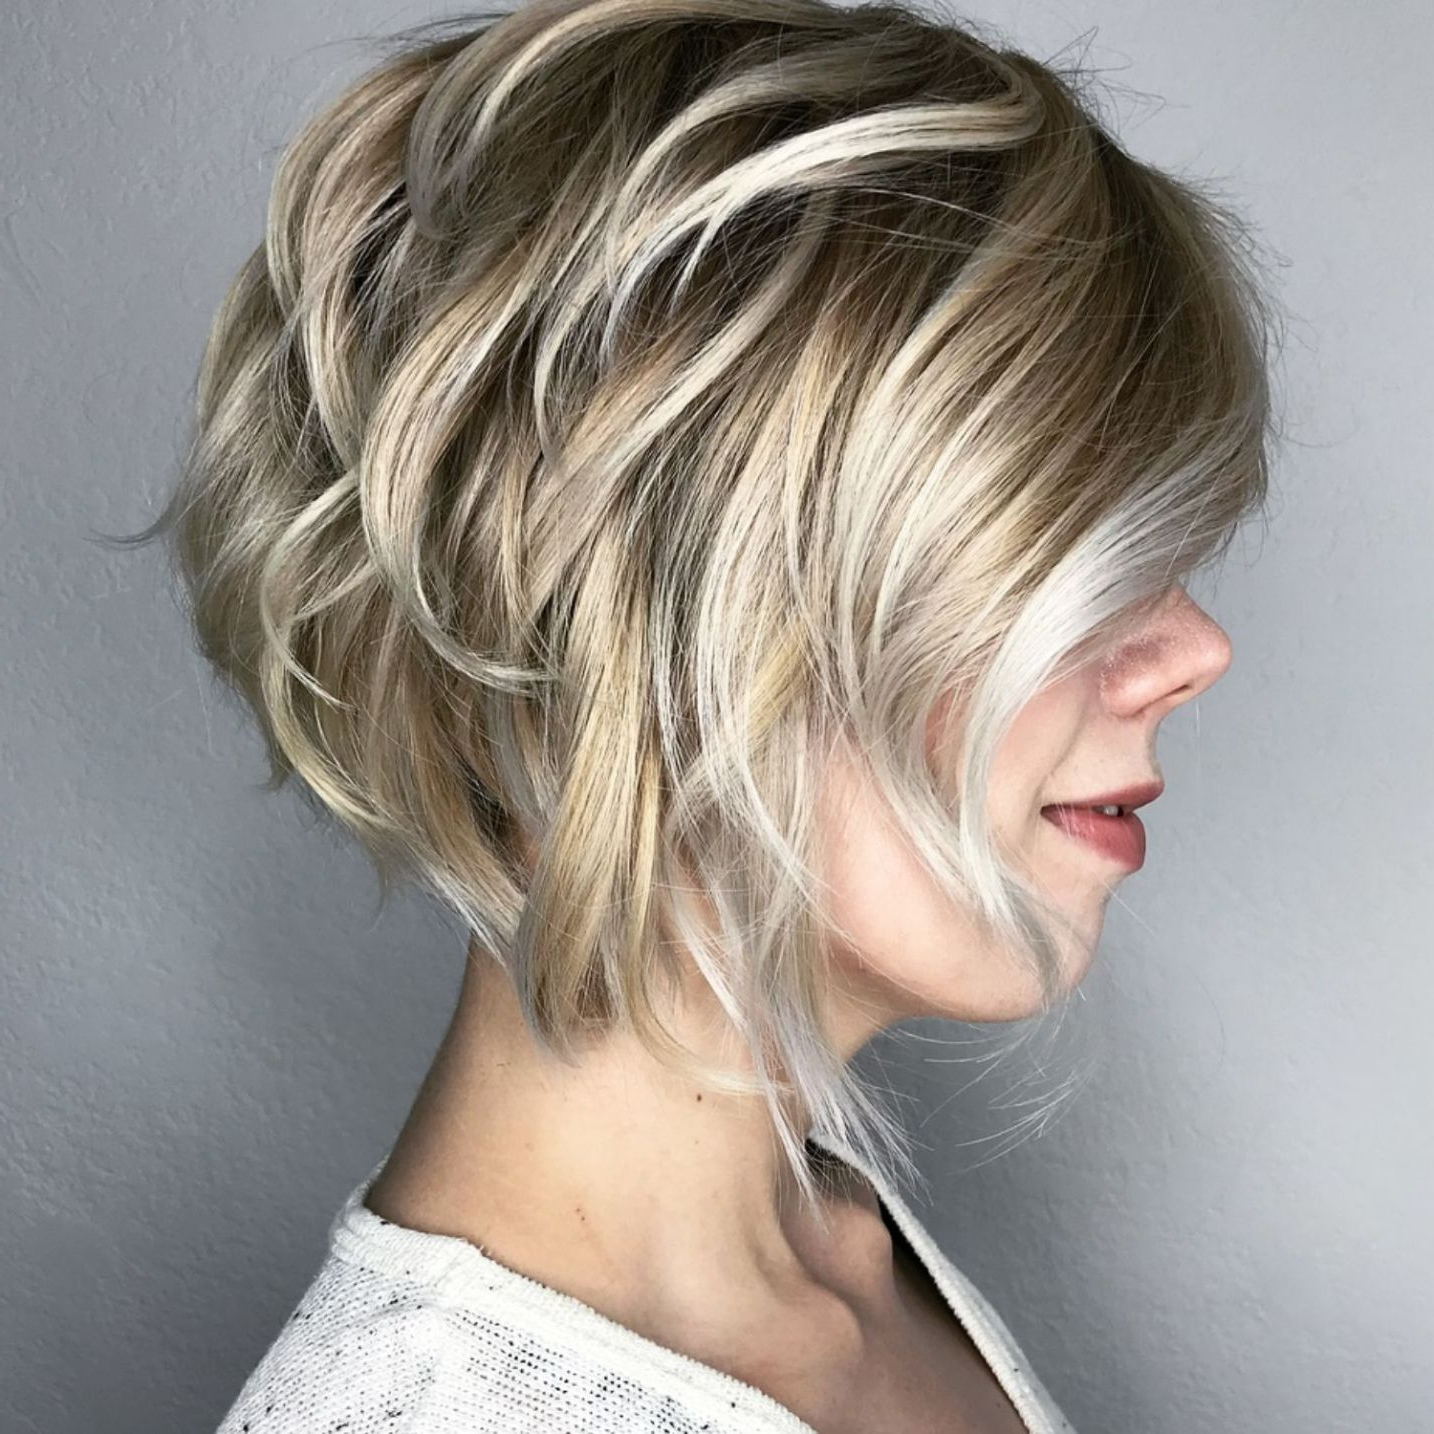 60 Best Short Bob Haircuts And Hairstyles For Women In 2019 For Piece Y Golden Bob Hairstyles With Silver Highlights (View 1 of 20)